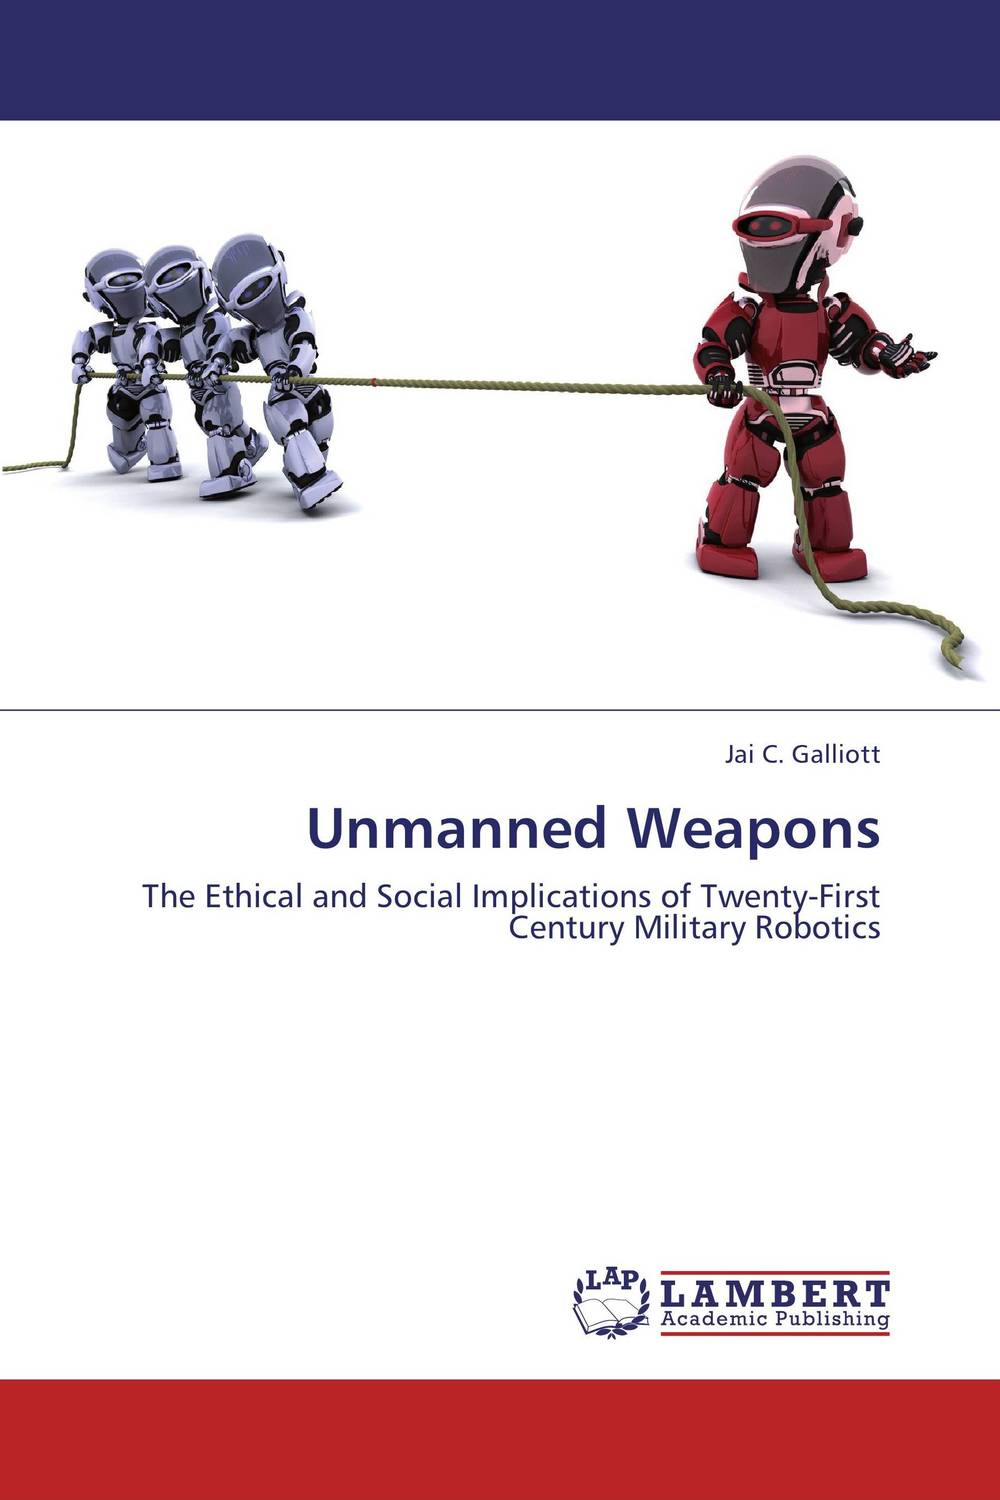 Unmanned Weapons unmanned